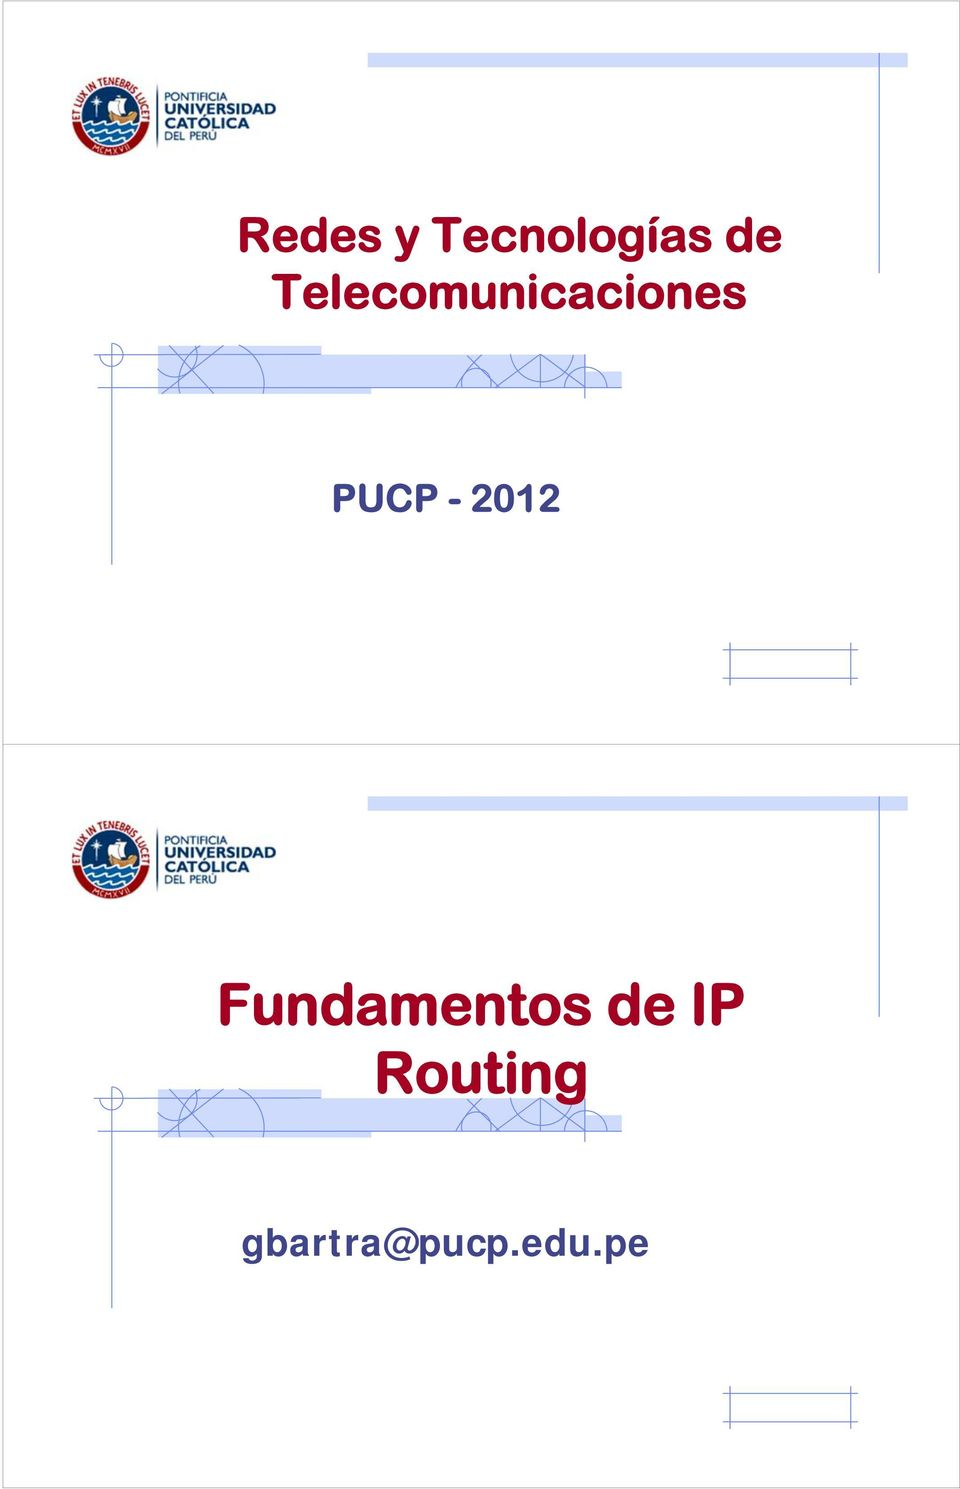 - 2012 Fundamentos de IP